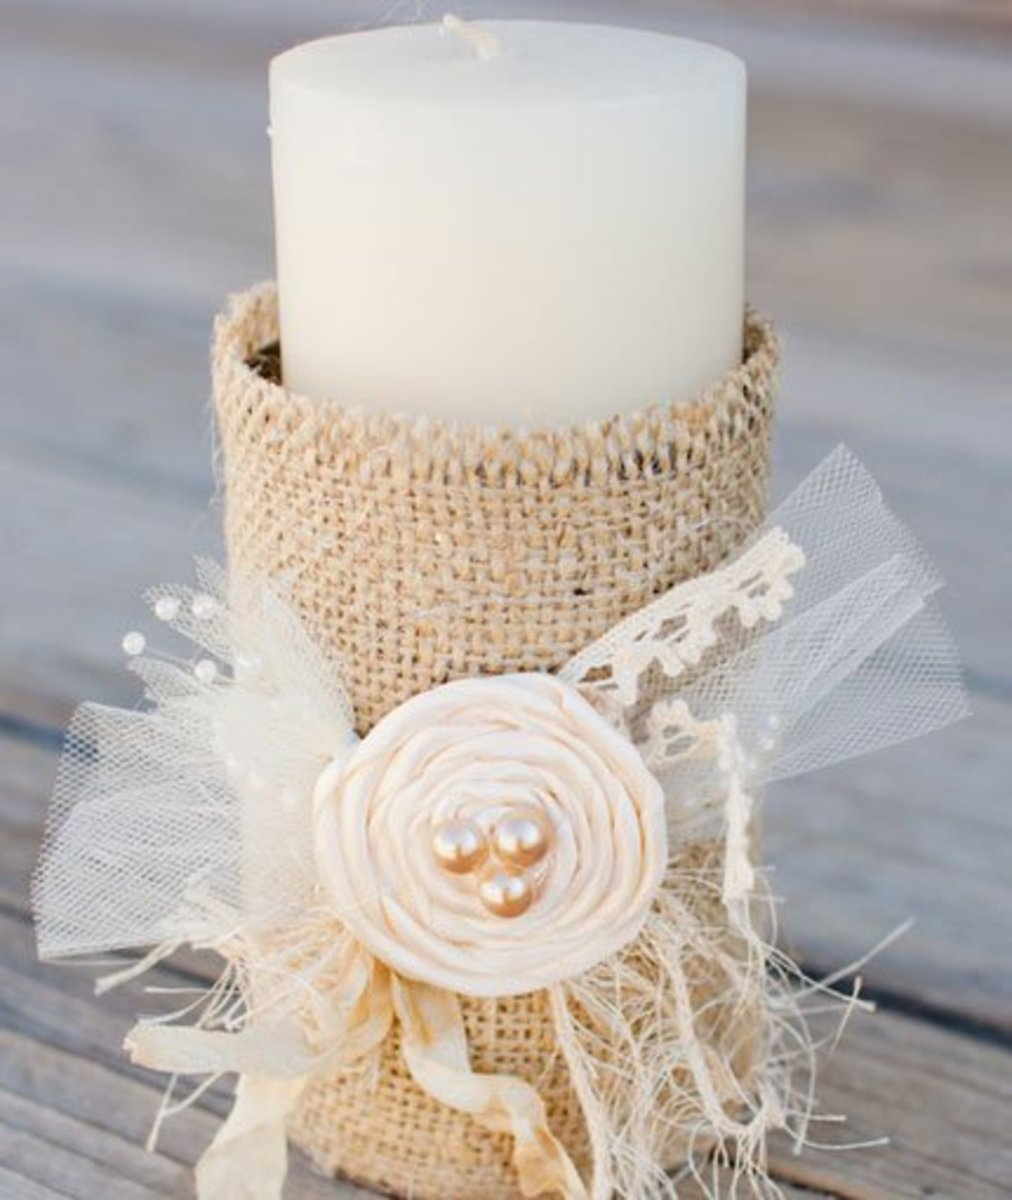 Diy Burlap Wedding Ideas: 18 DIY Wedding Decorations On A Budget